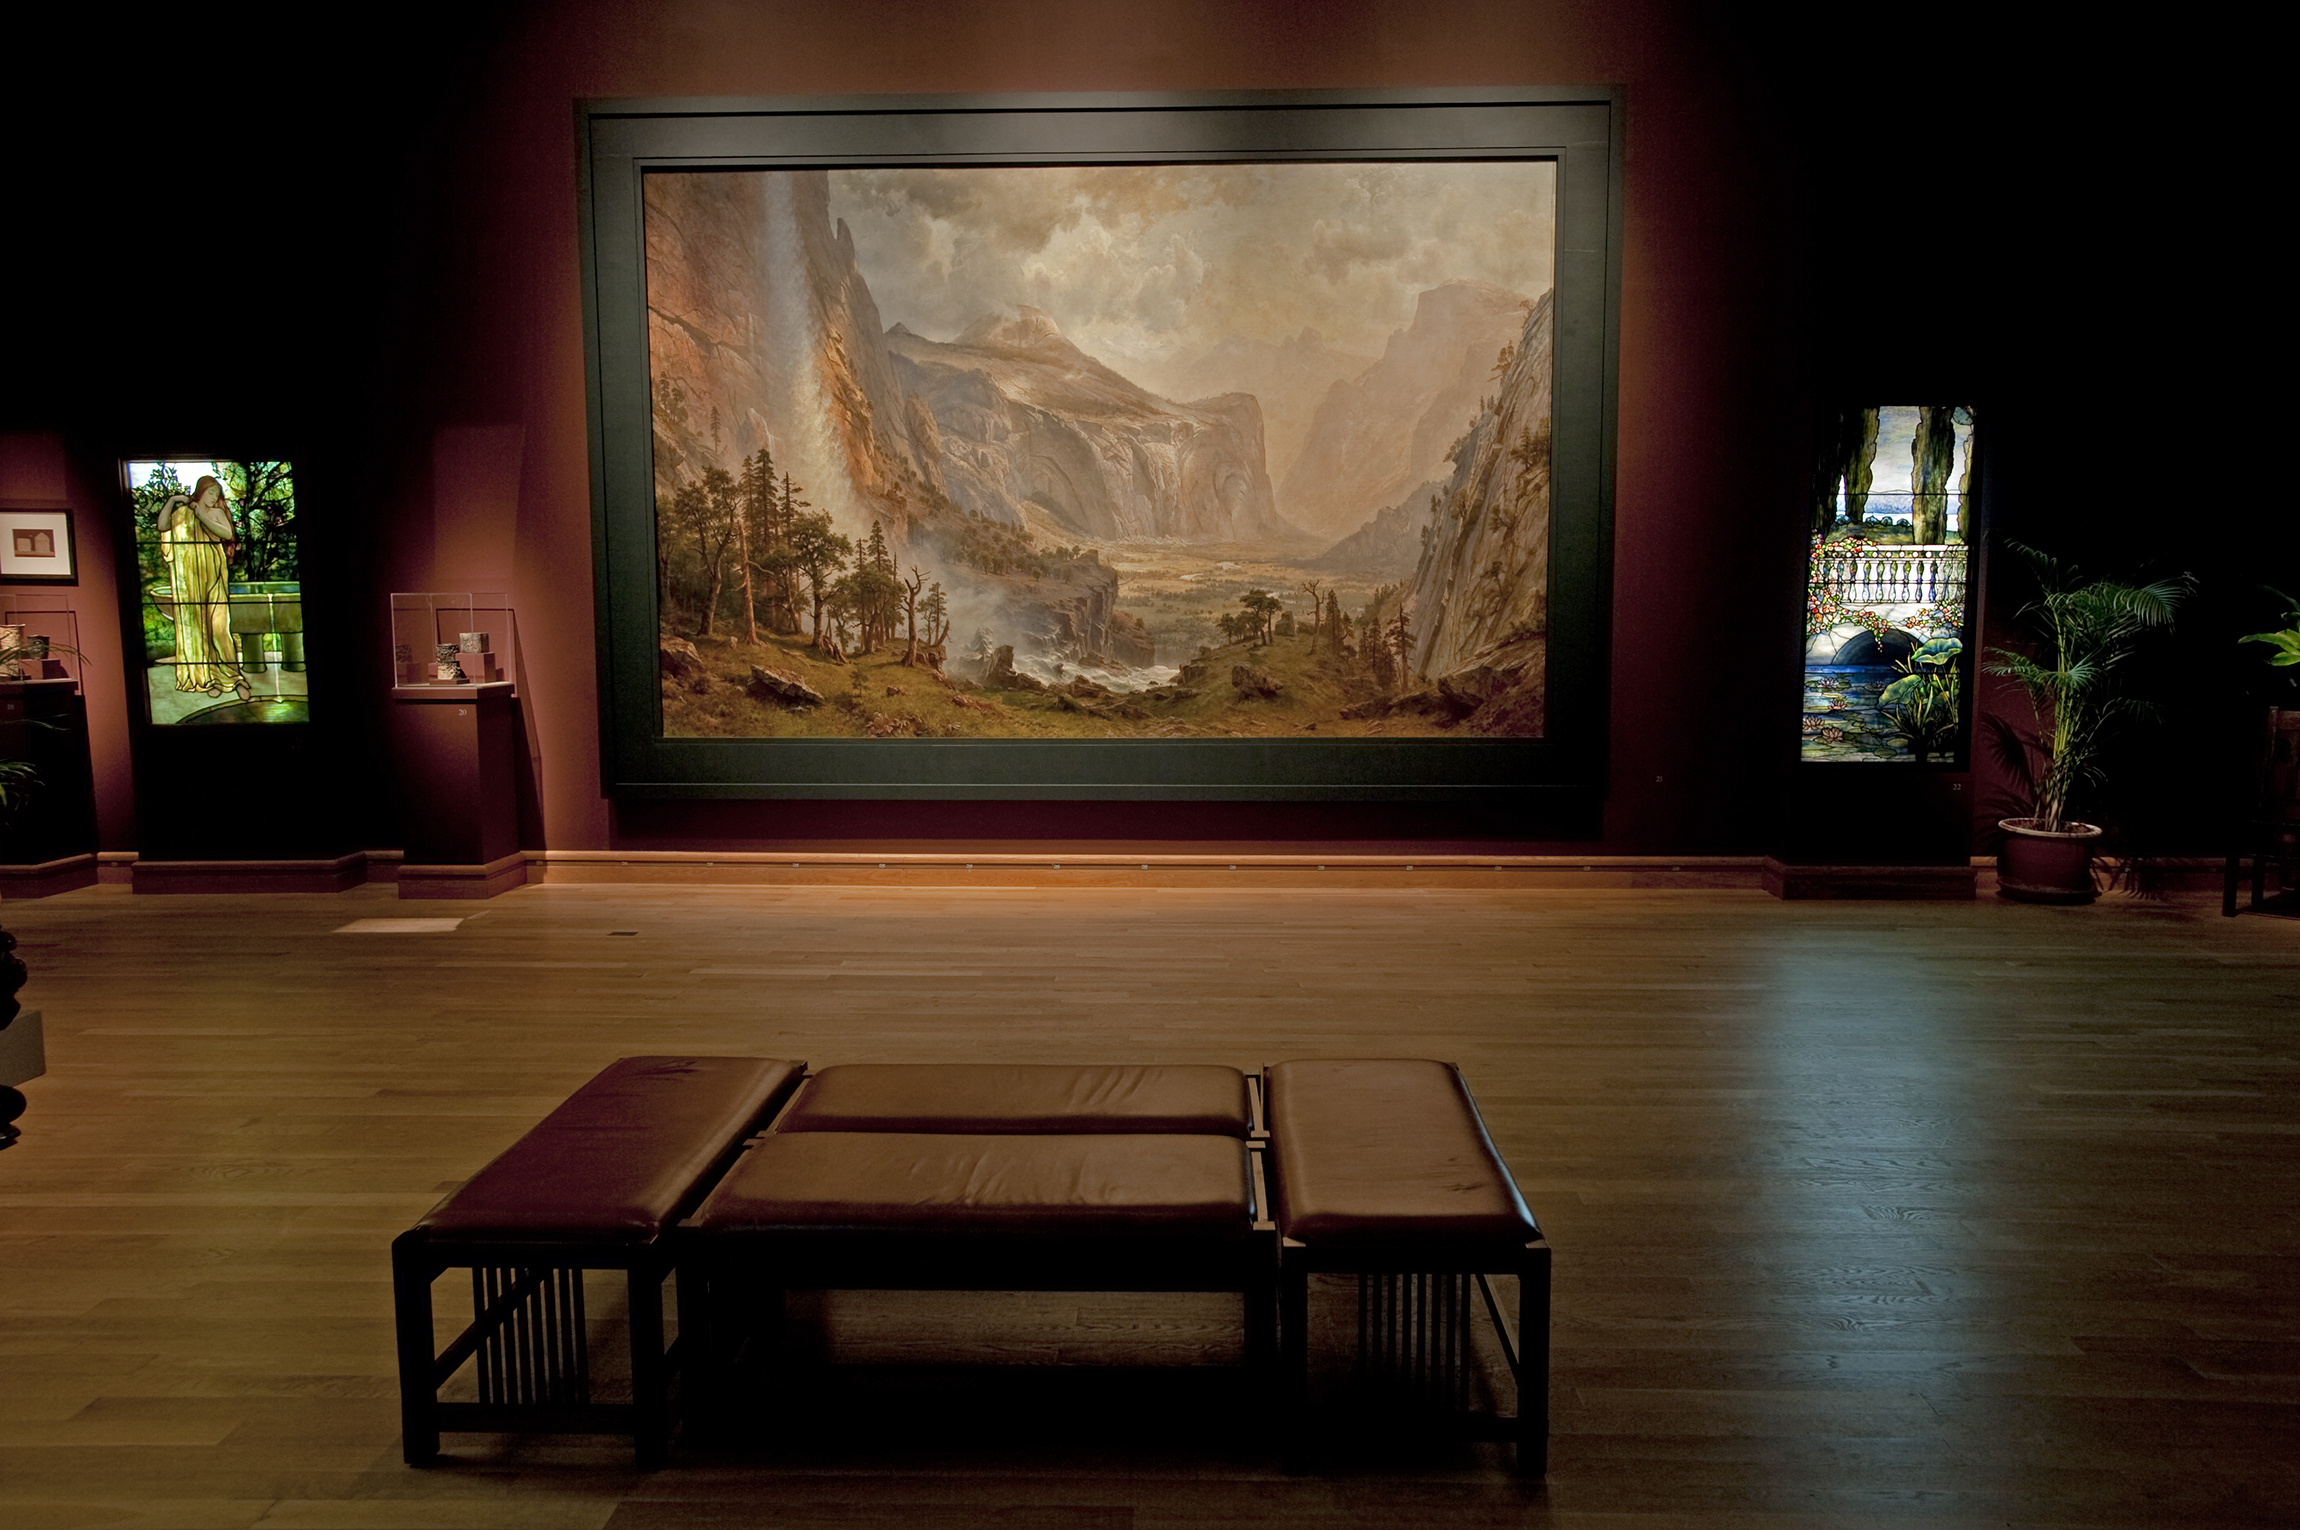 The Domes of the Yosemite  will be at the Morse Museum in Winter Park, FL until July 8, 2008.